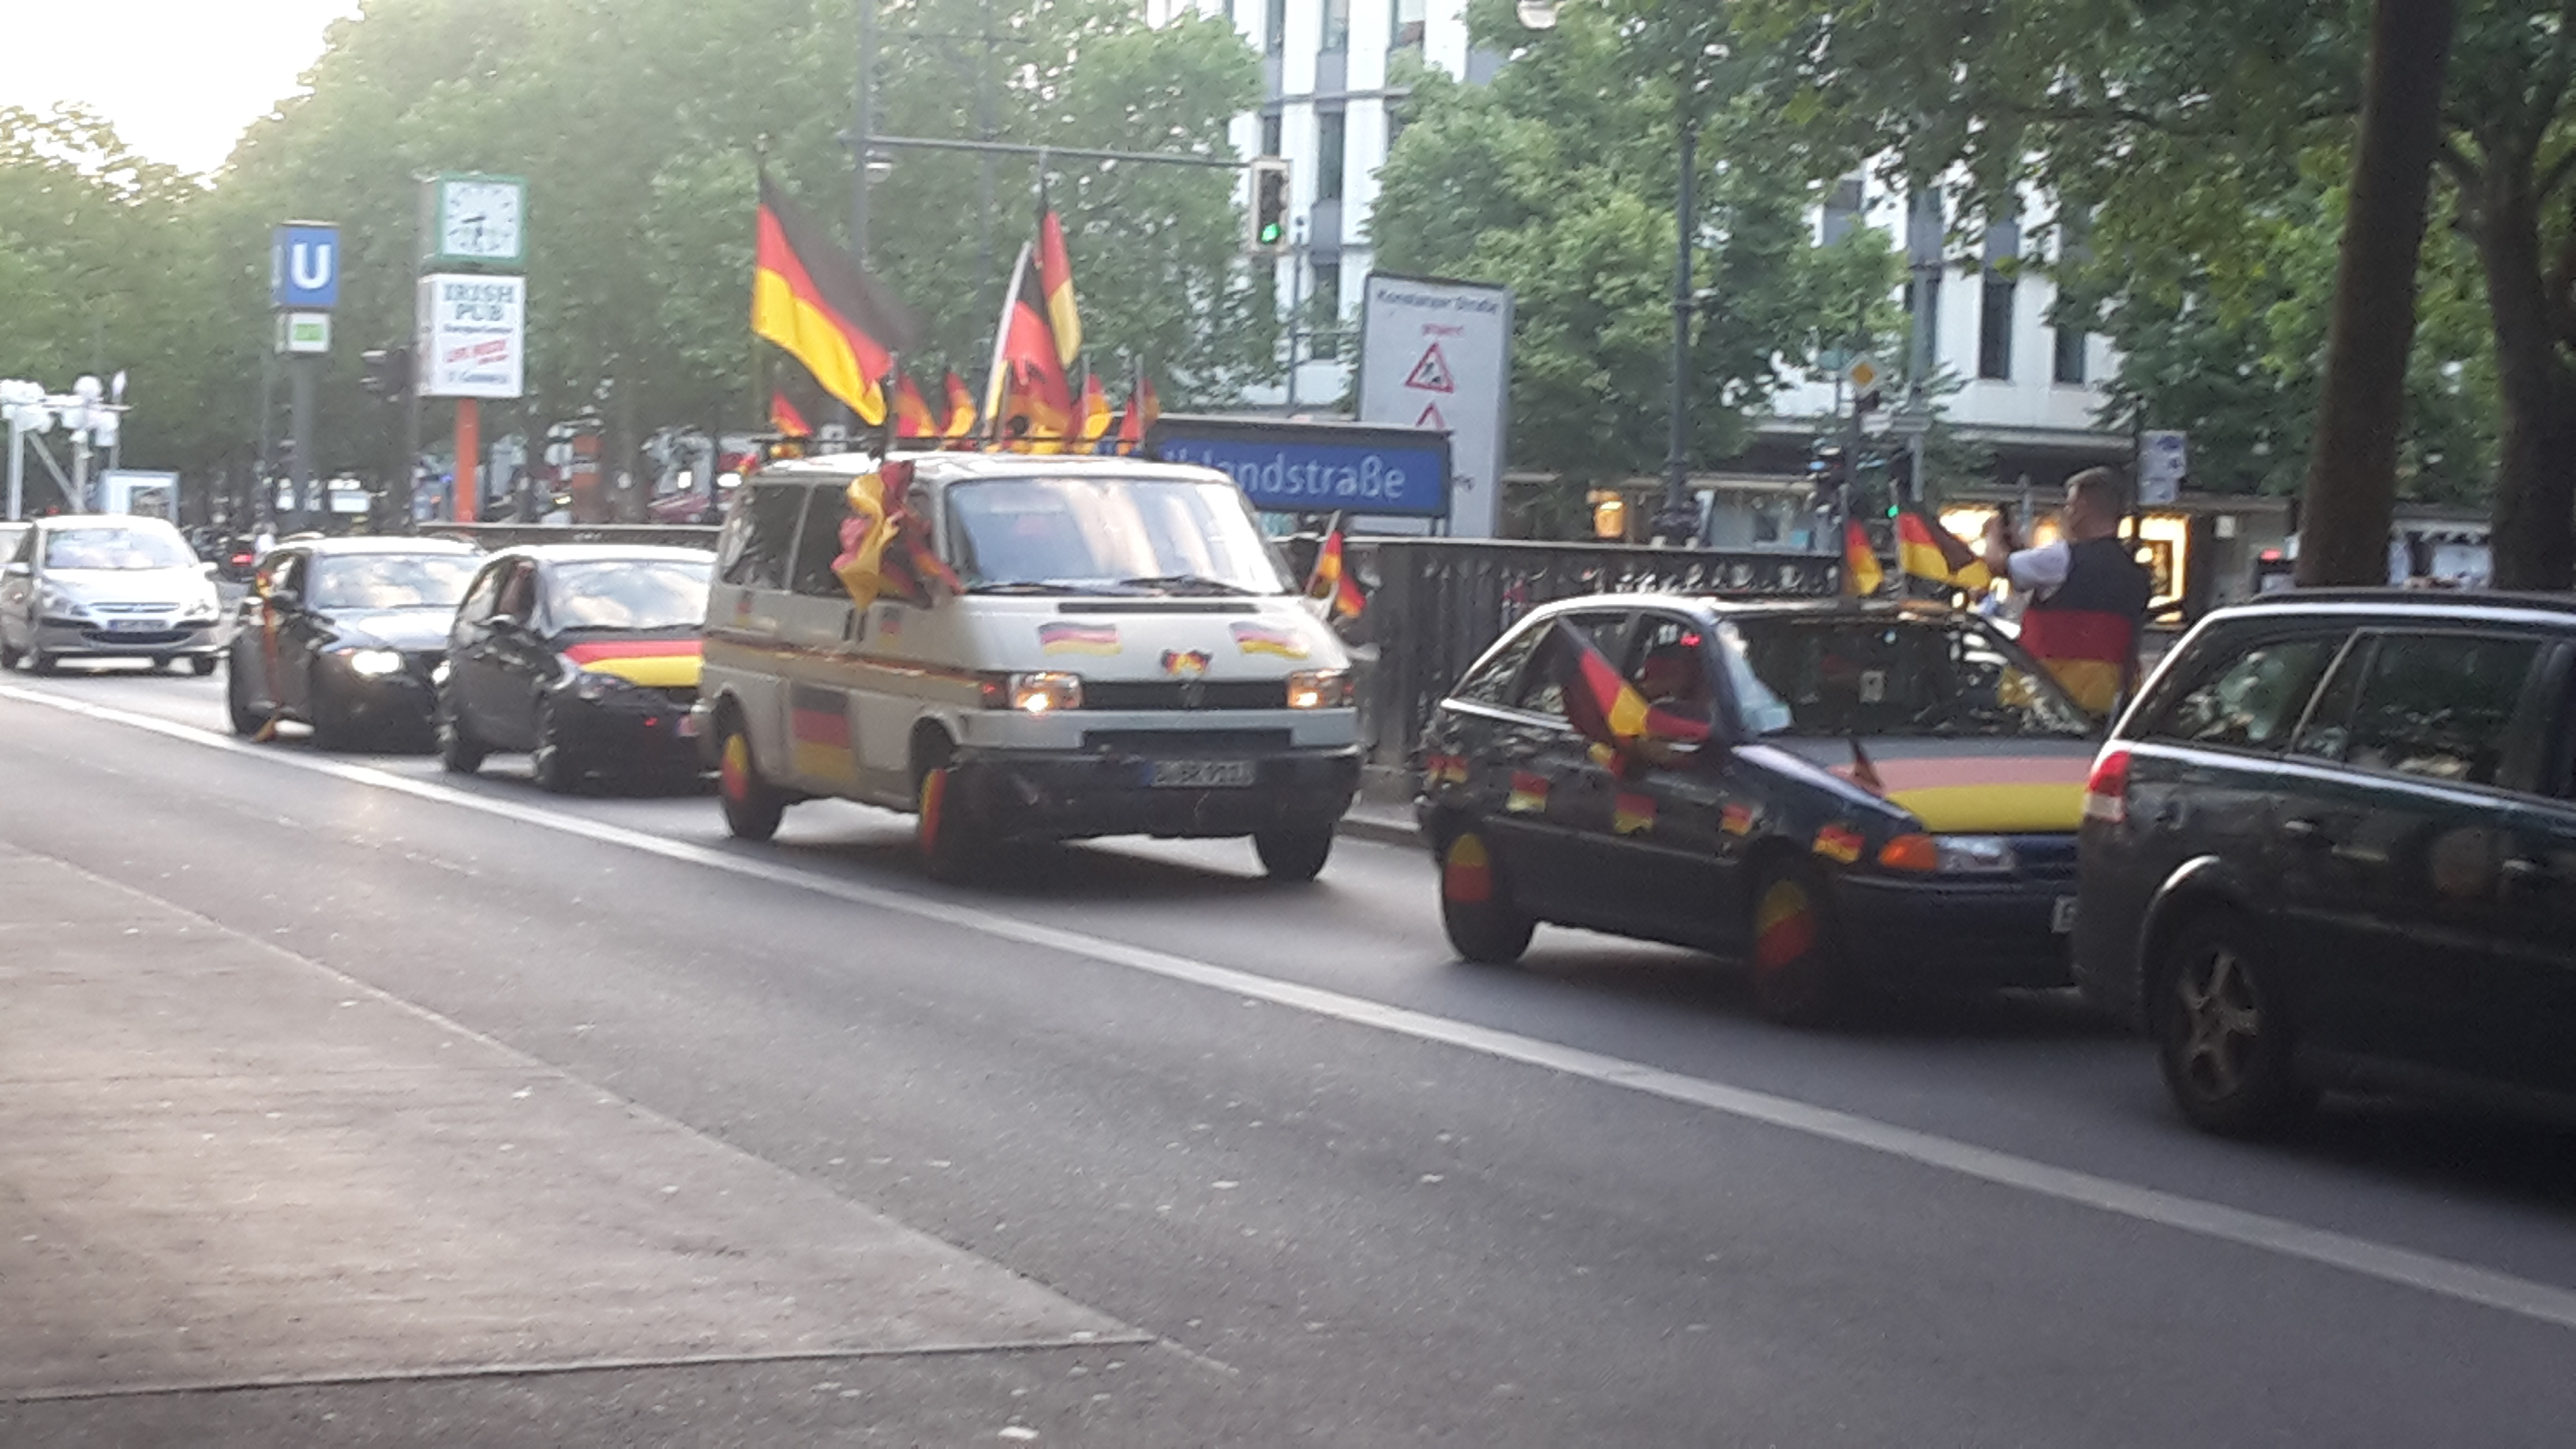 Germany Berlin 20160626_203237